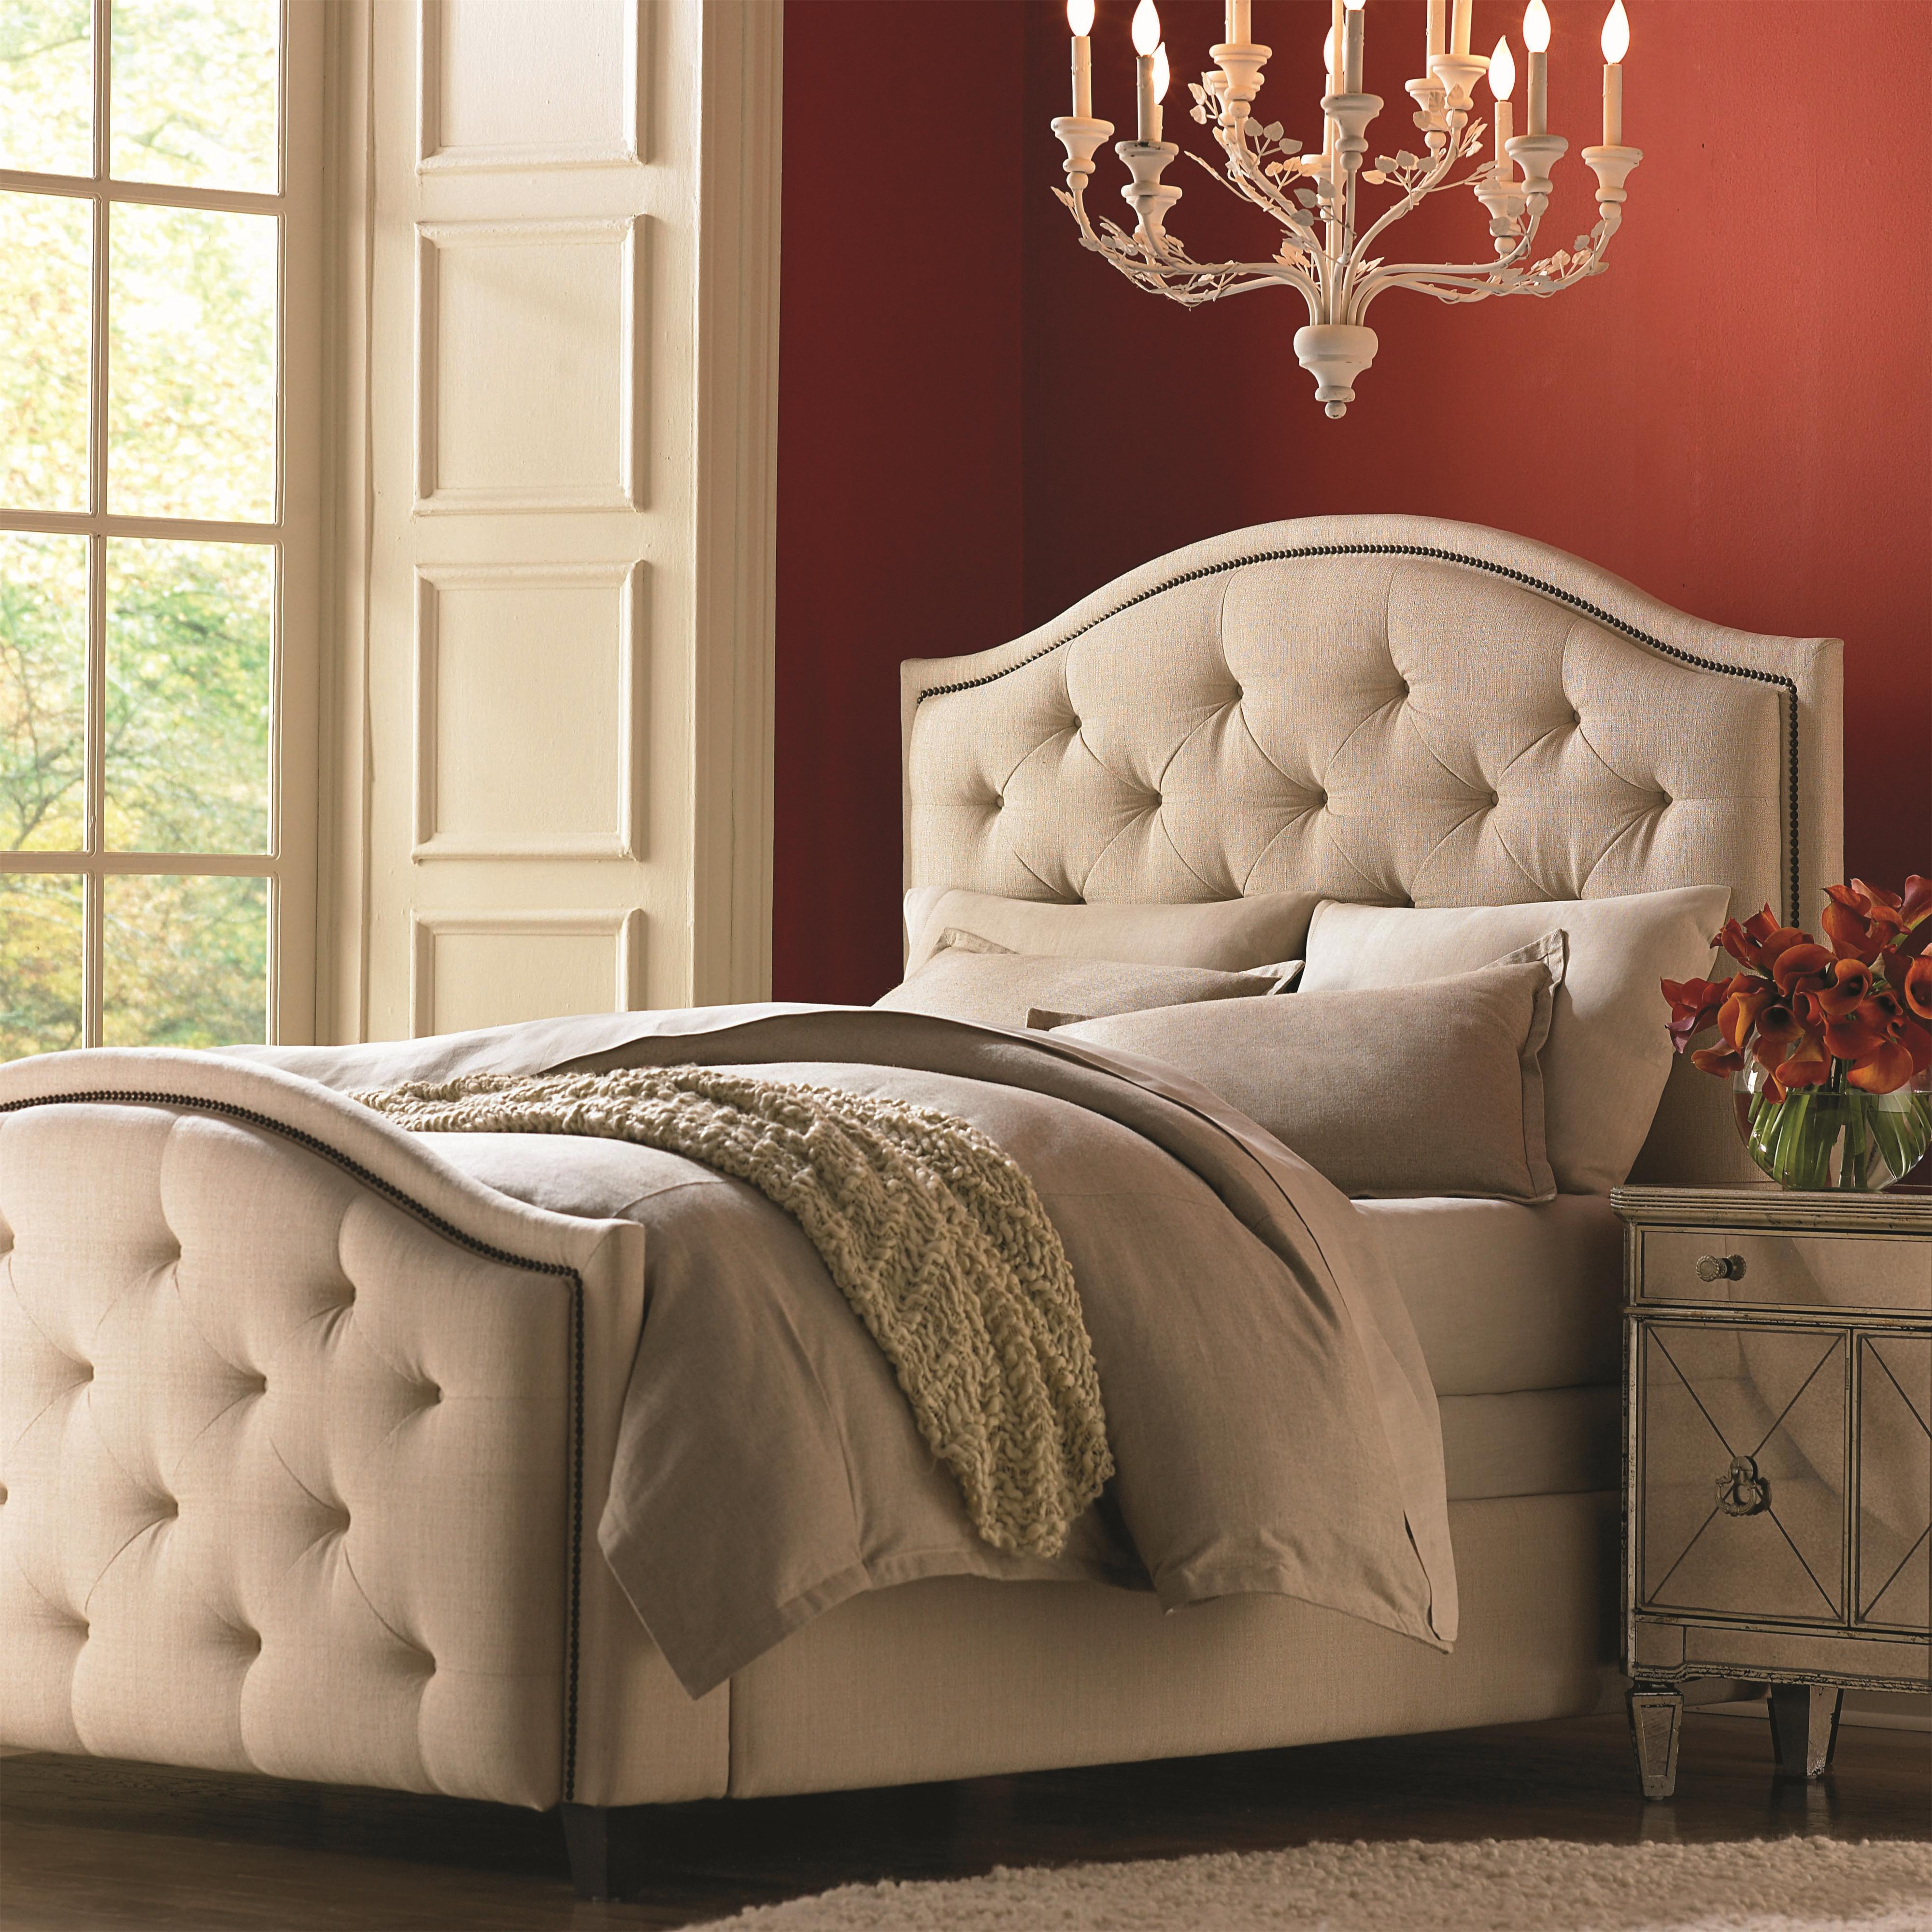 Bed Headboard Custom Upholstered Beds Queen Vienna Upholstered Headboard And High Footboard Bed By Bassett At Suburban Furniture